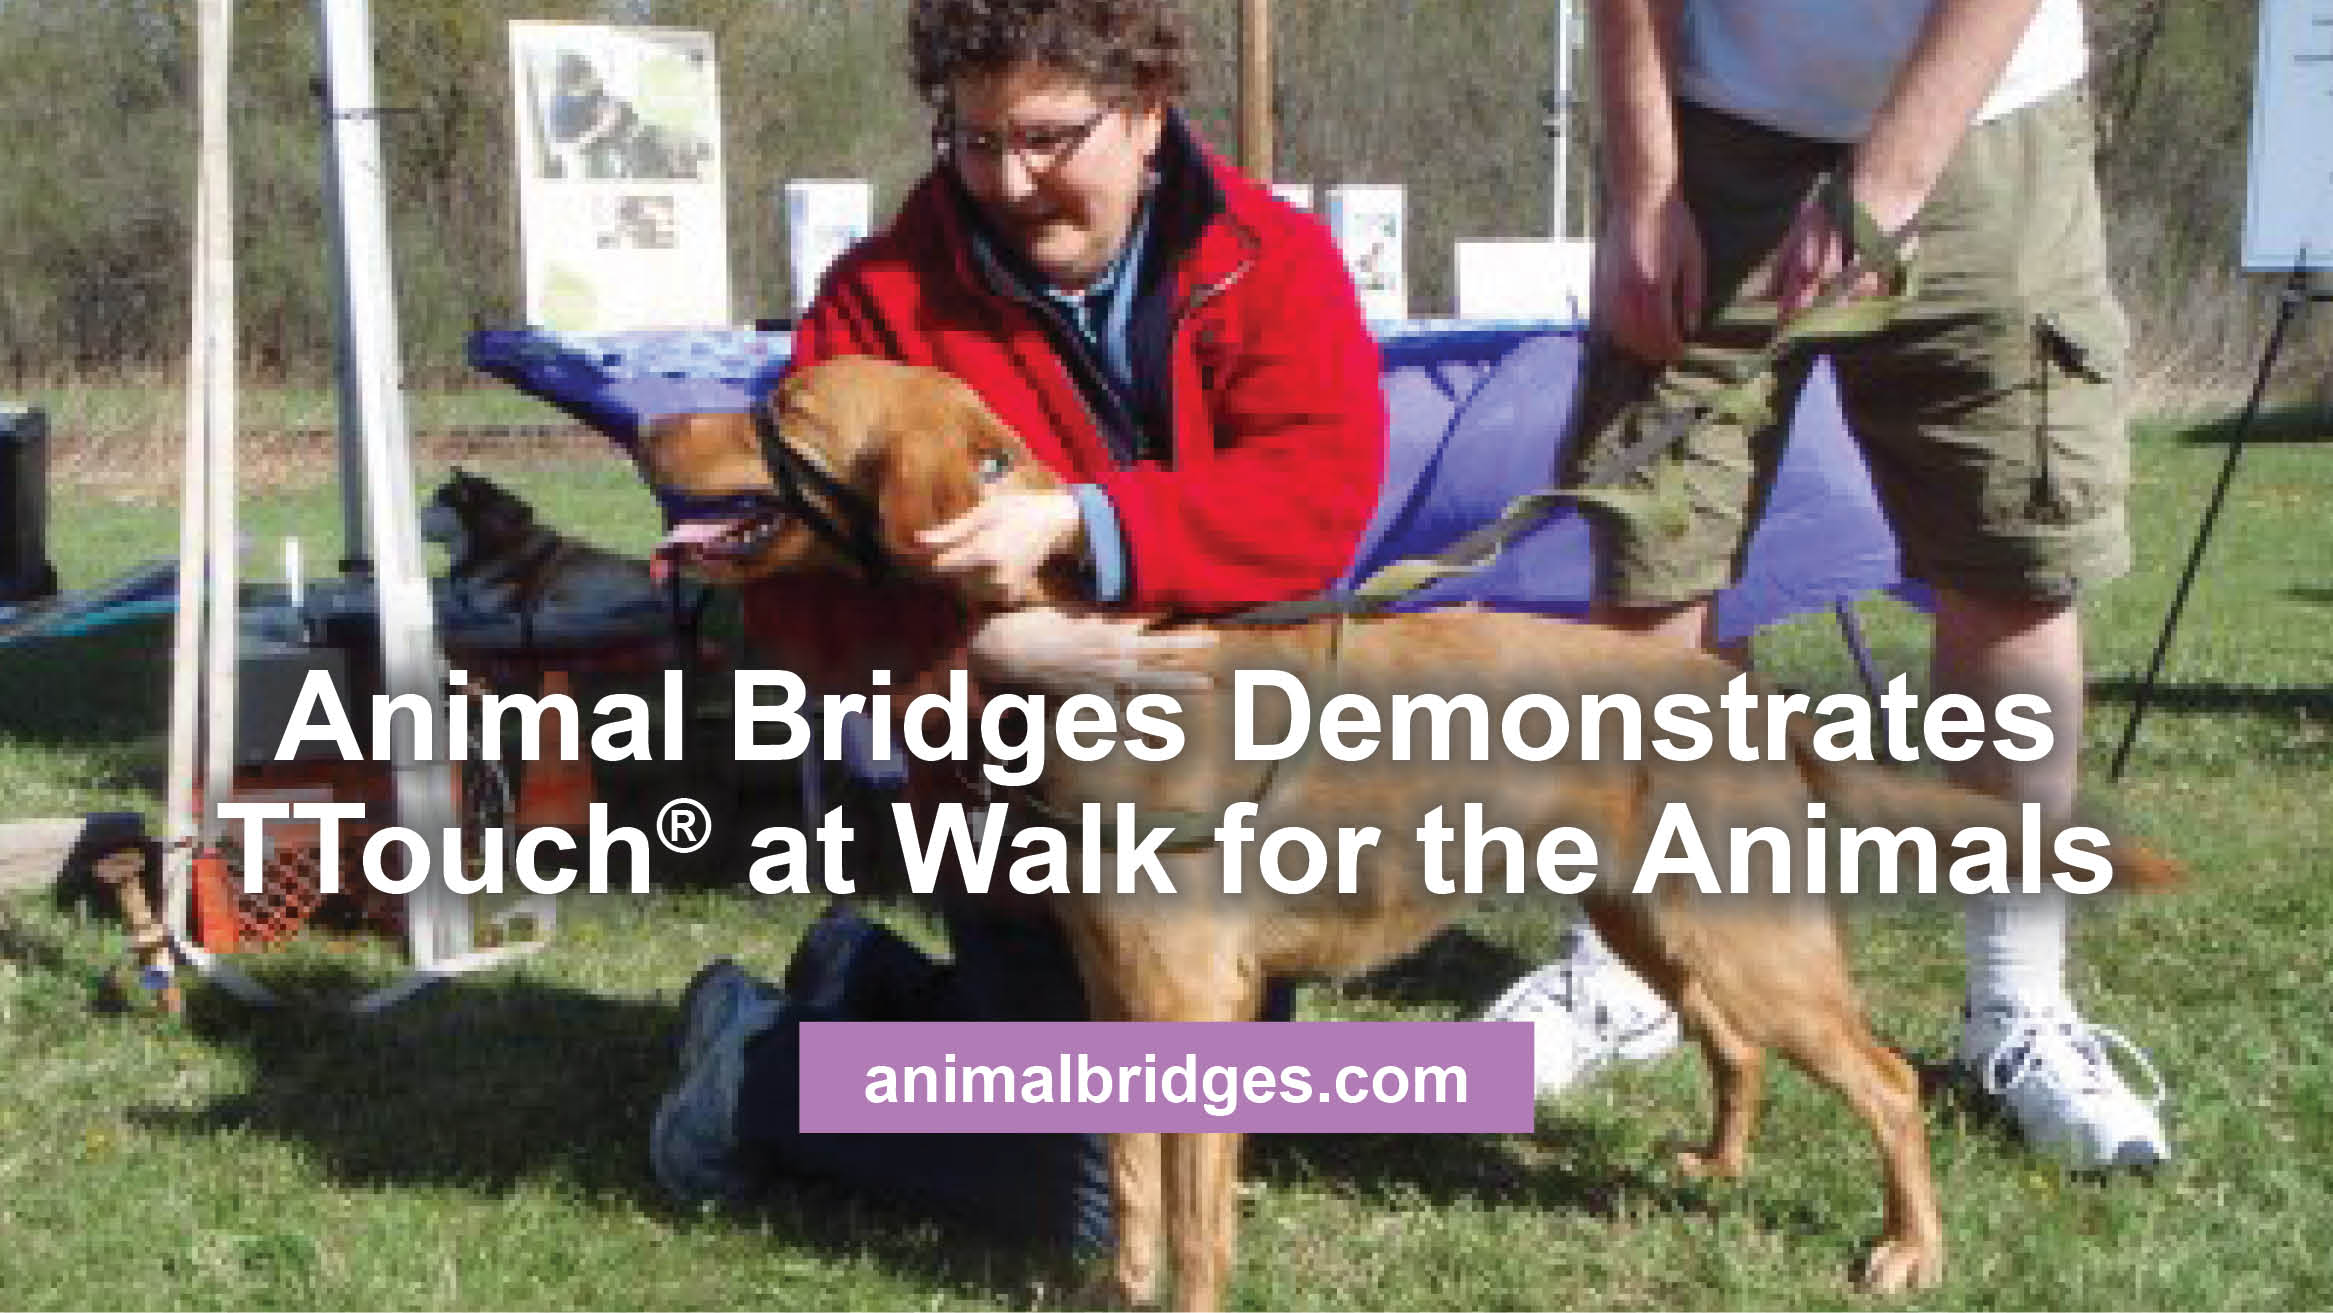 Animal Bridges Demonstrates TTouch® at Walk for the Animals